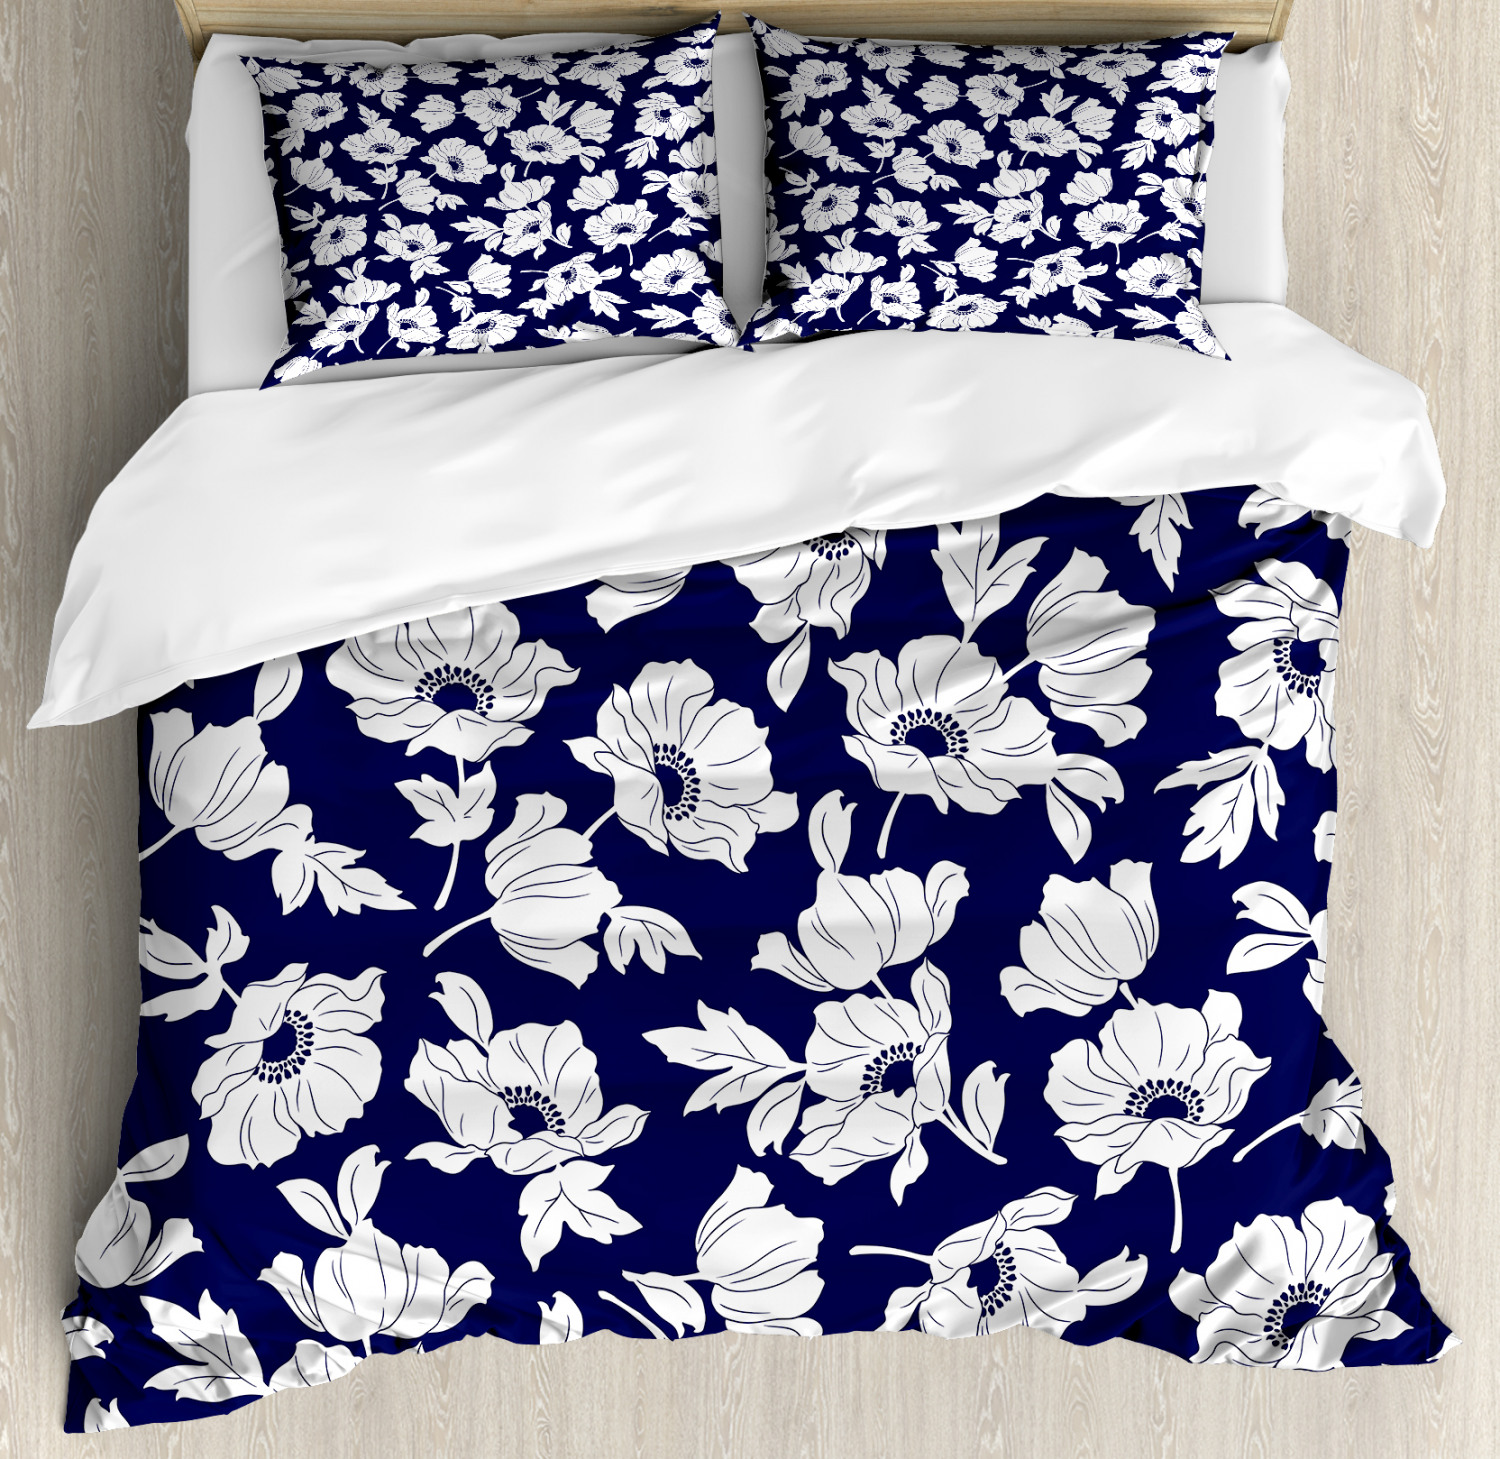 navy and white king size duvet cover set botanical arrangement with poppies in white simple feminine corsage decorative 3 piece bedding set with 2